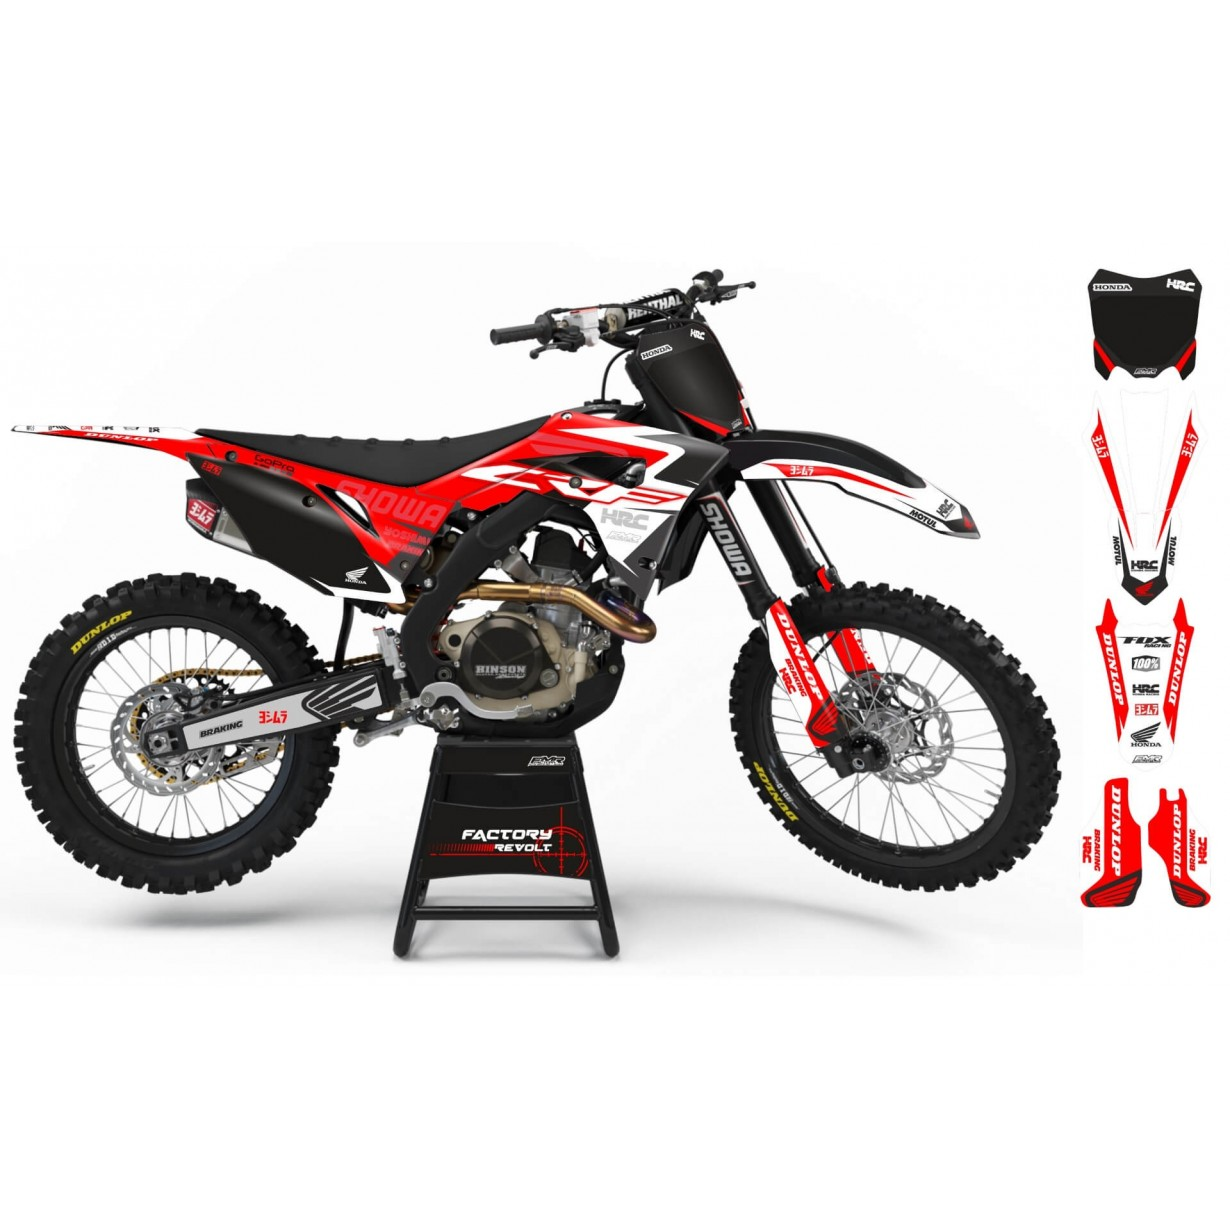 Kit déco Perso HONDA Factory Revolt A26A5 black/red/white